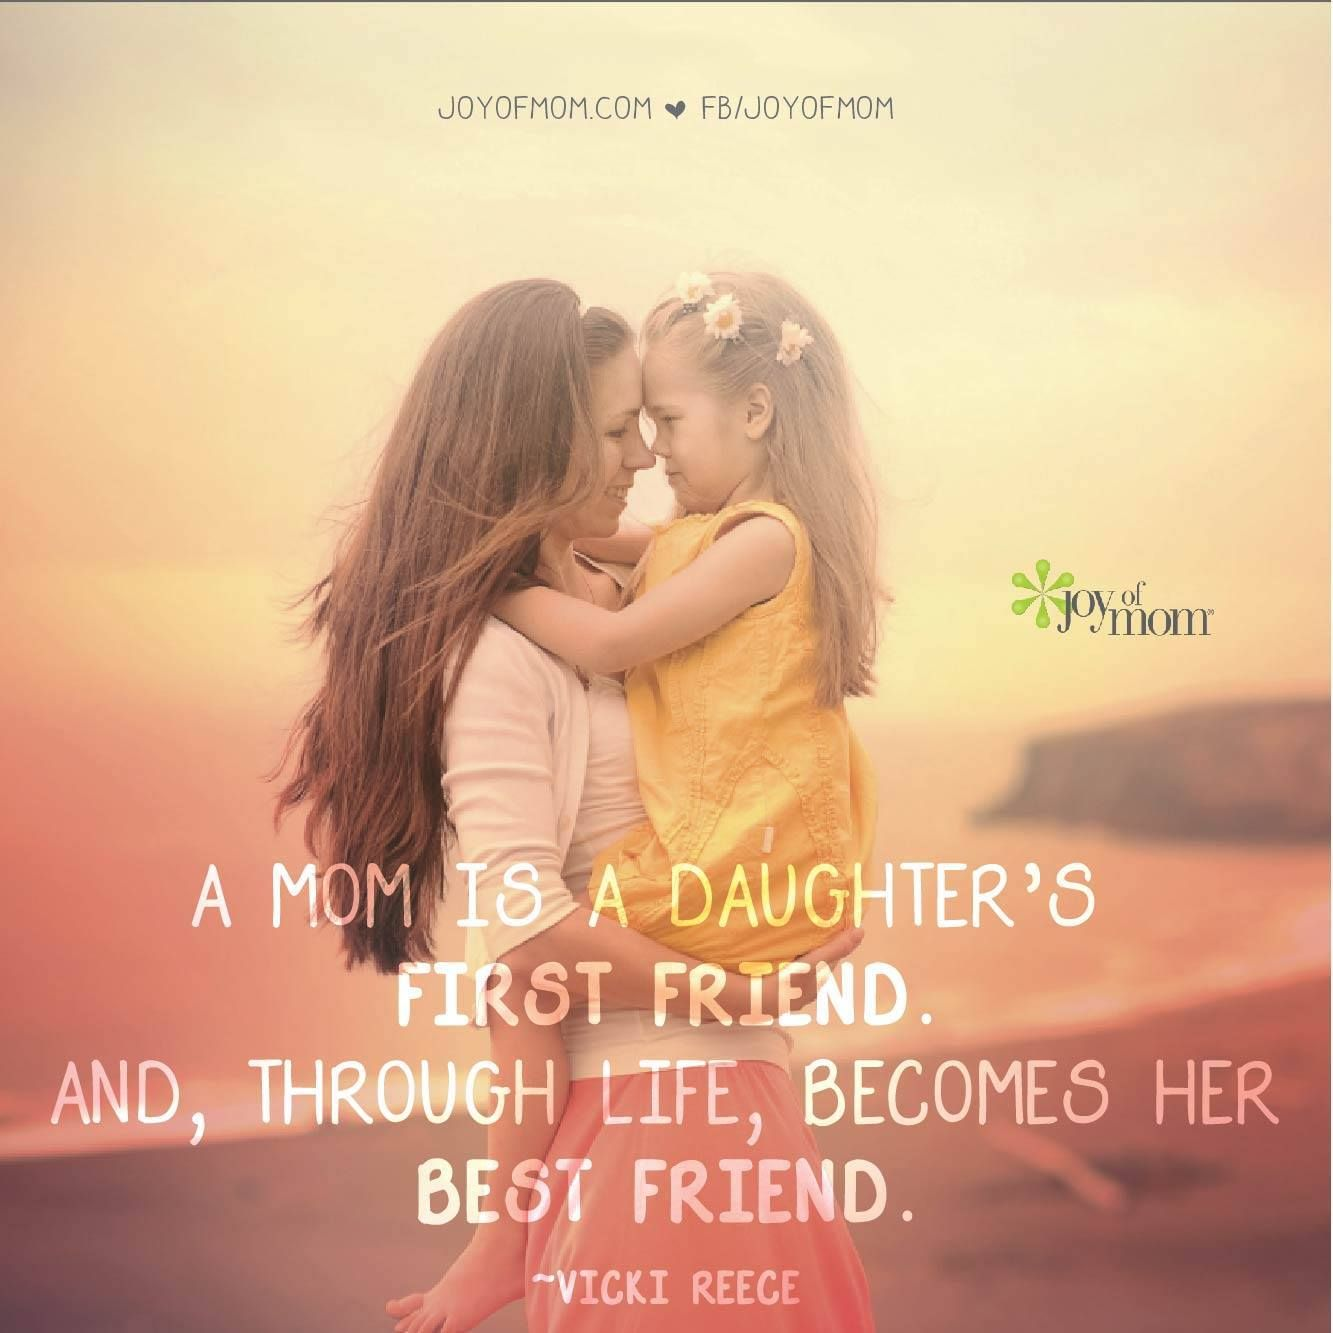 The bond between a mother and daughter is one of the most